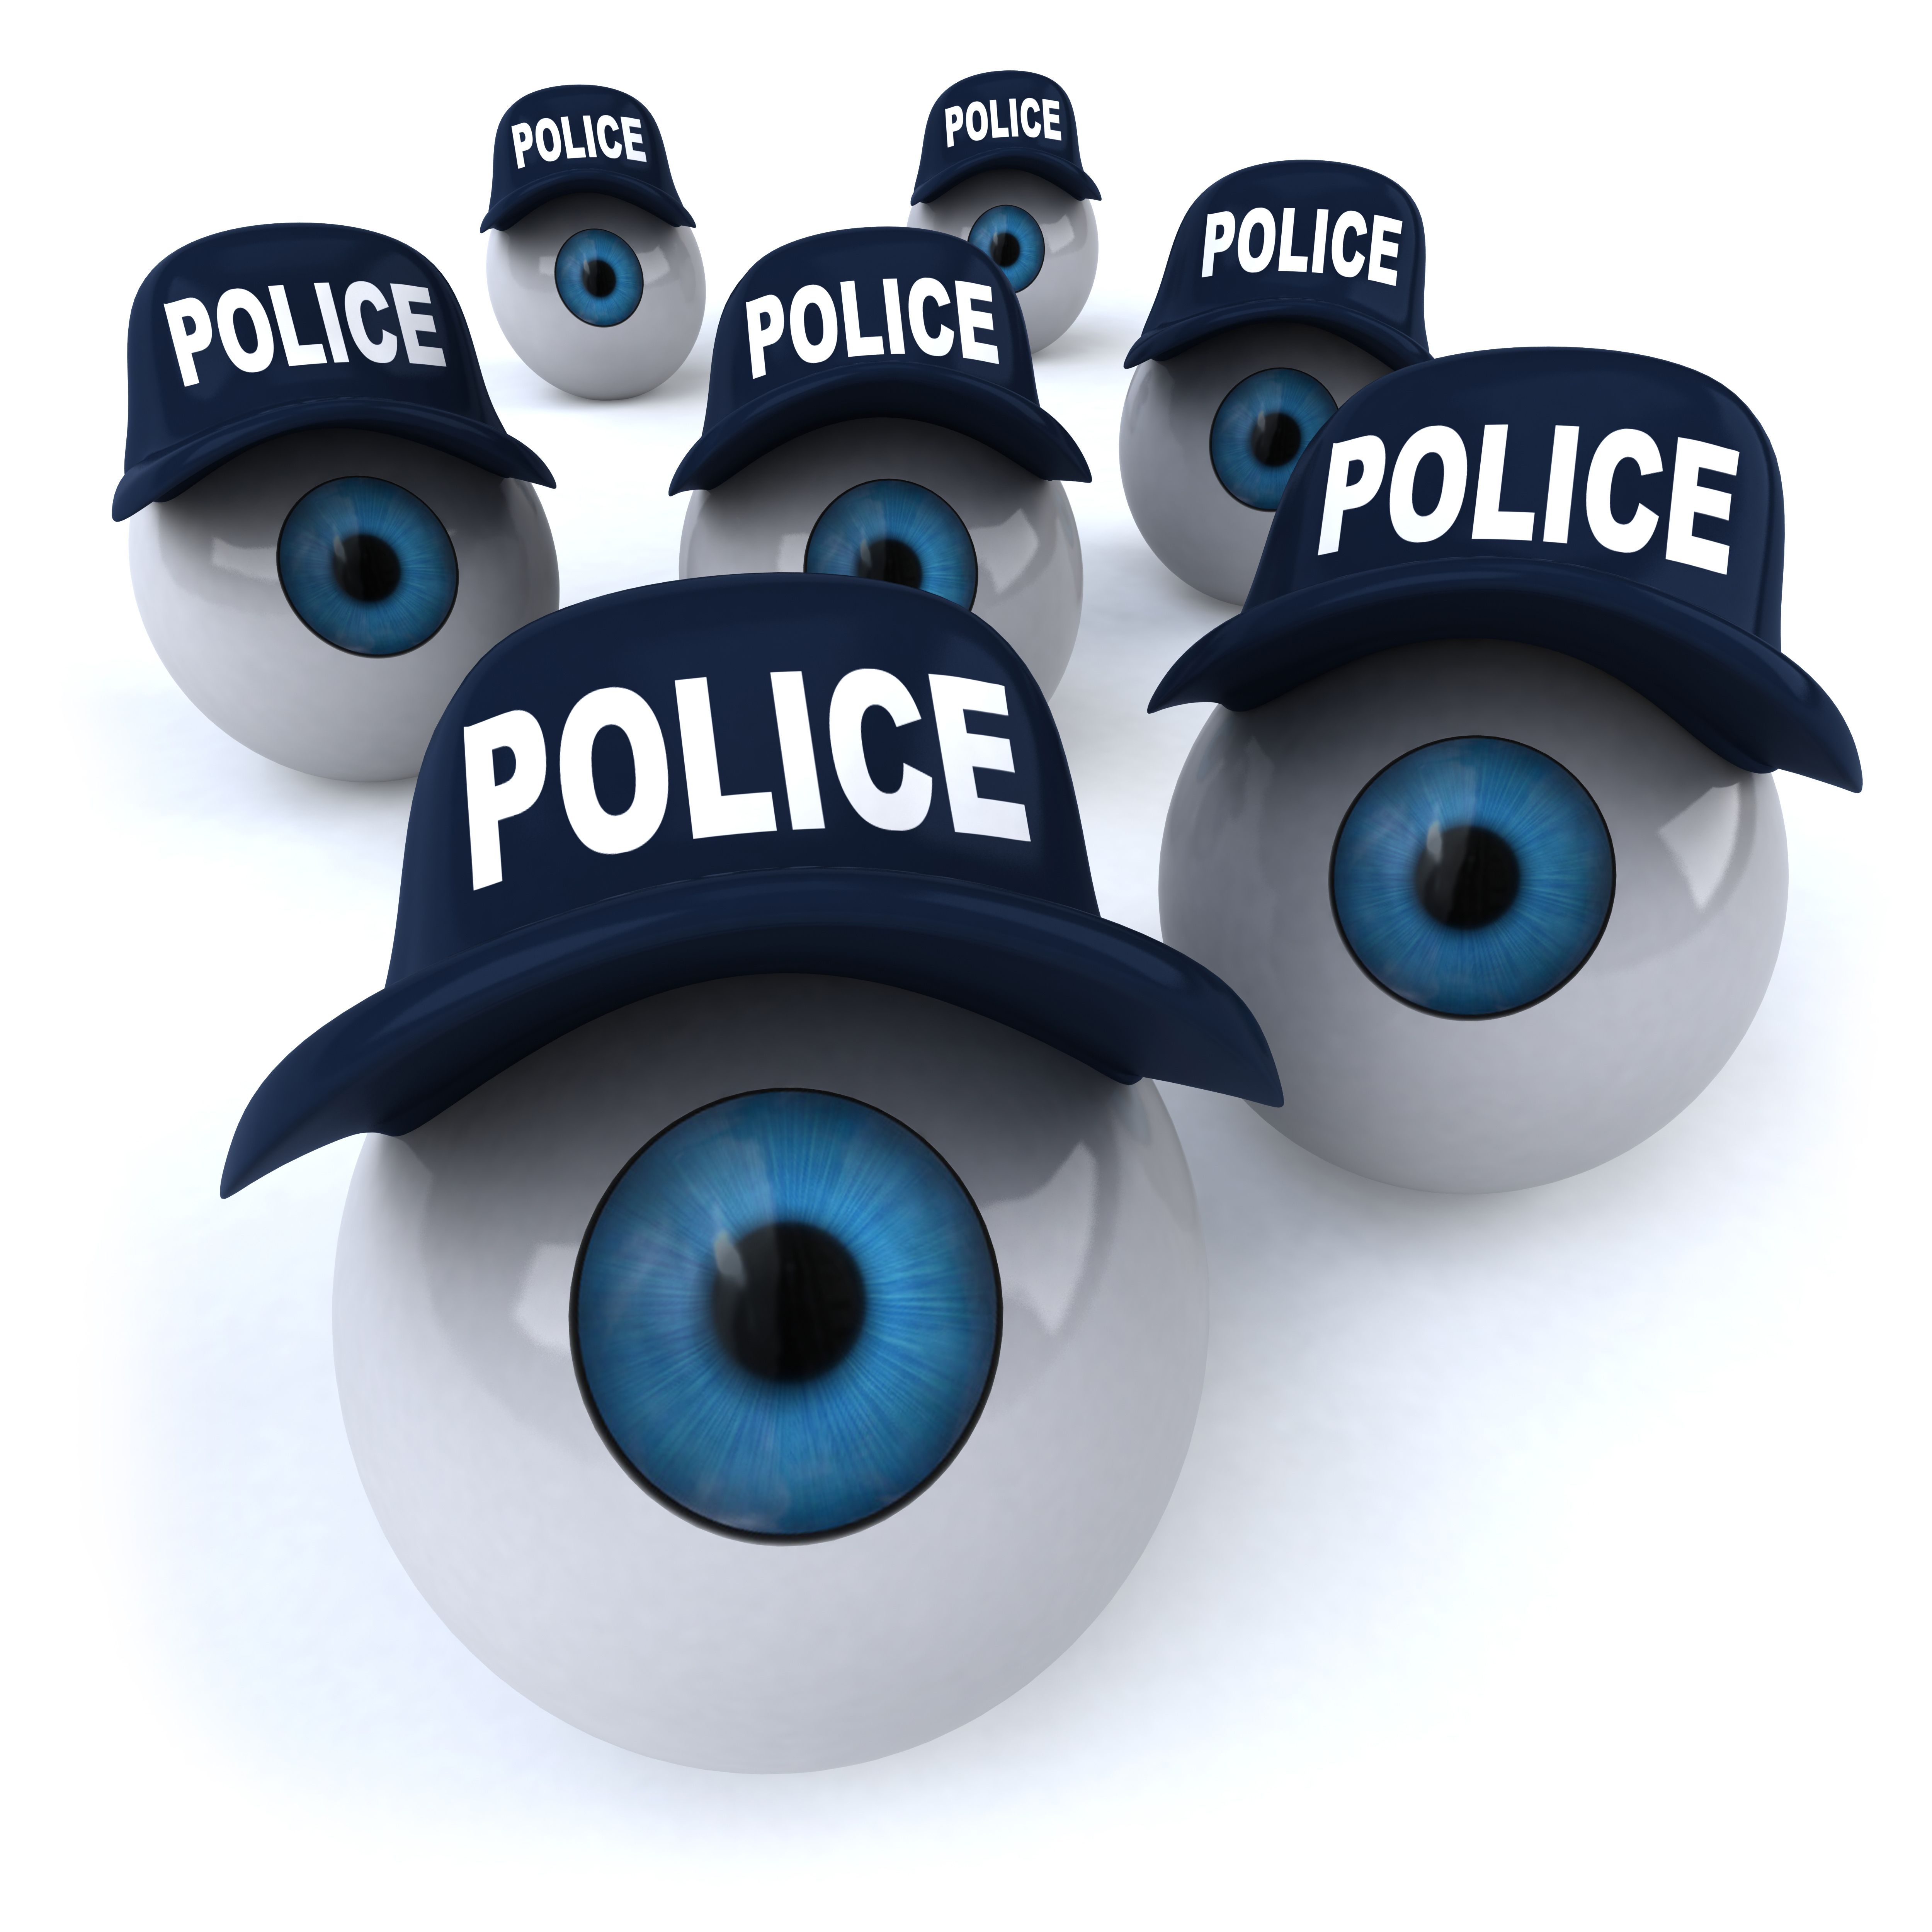 several eyeballs wearing police hats roll toward you